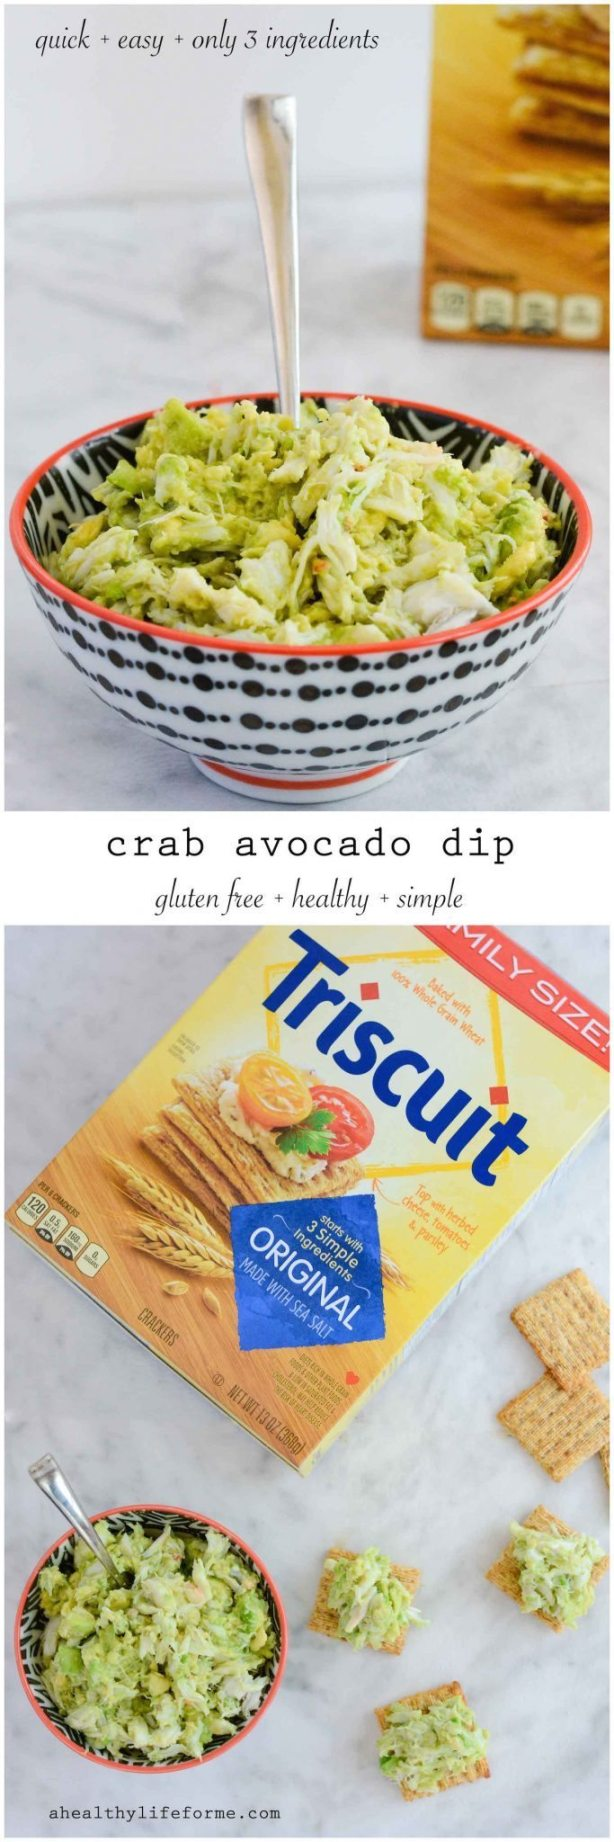 Crab Avocado Dip Recipe | ahealthylifeforme.com